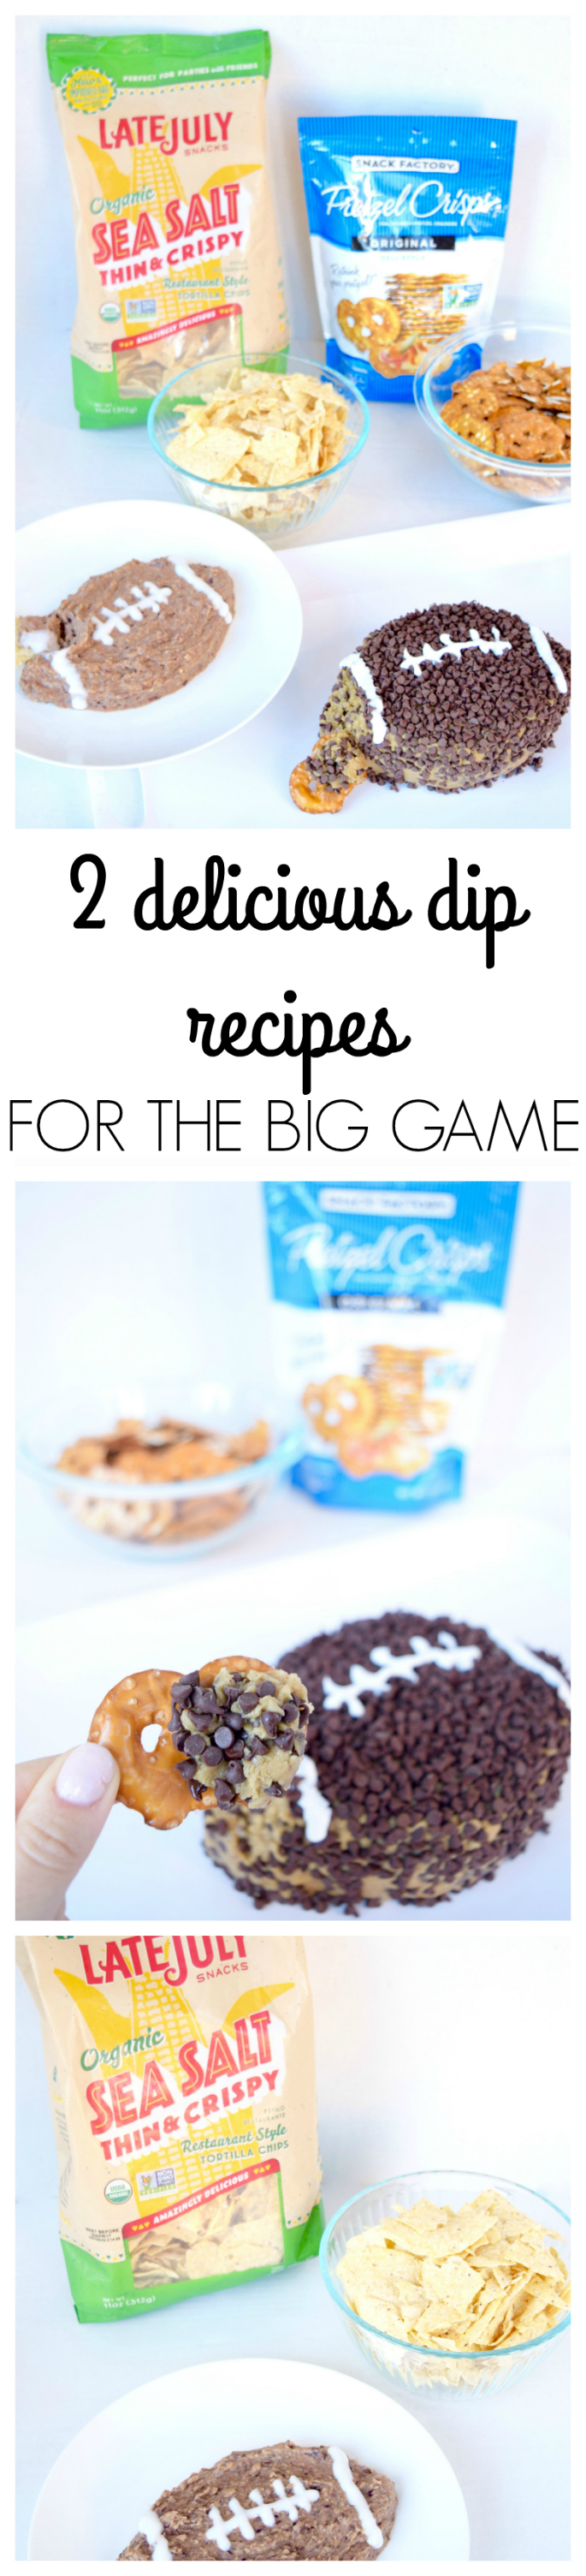 2 DELICIOUS DIP RECIPES FOR THE BIG GAME